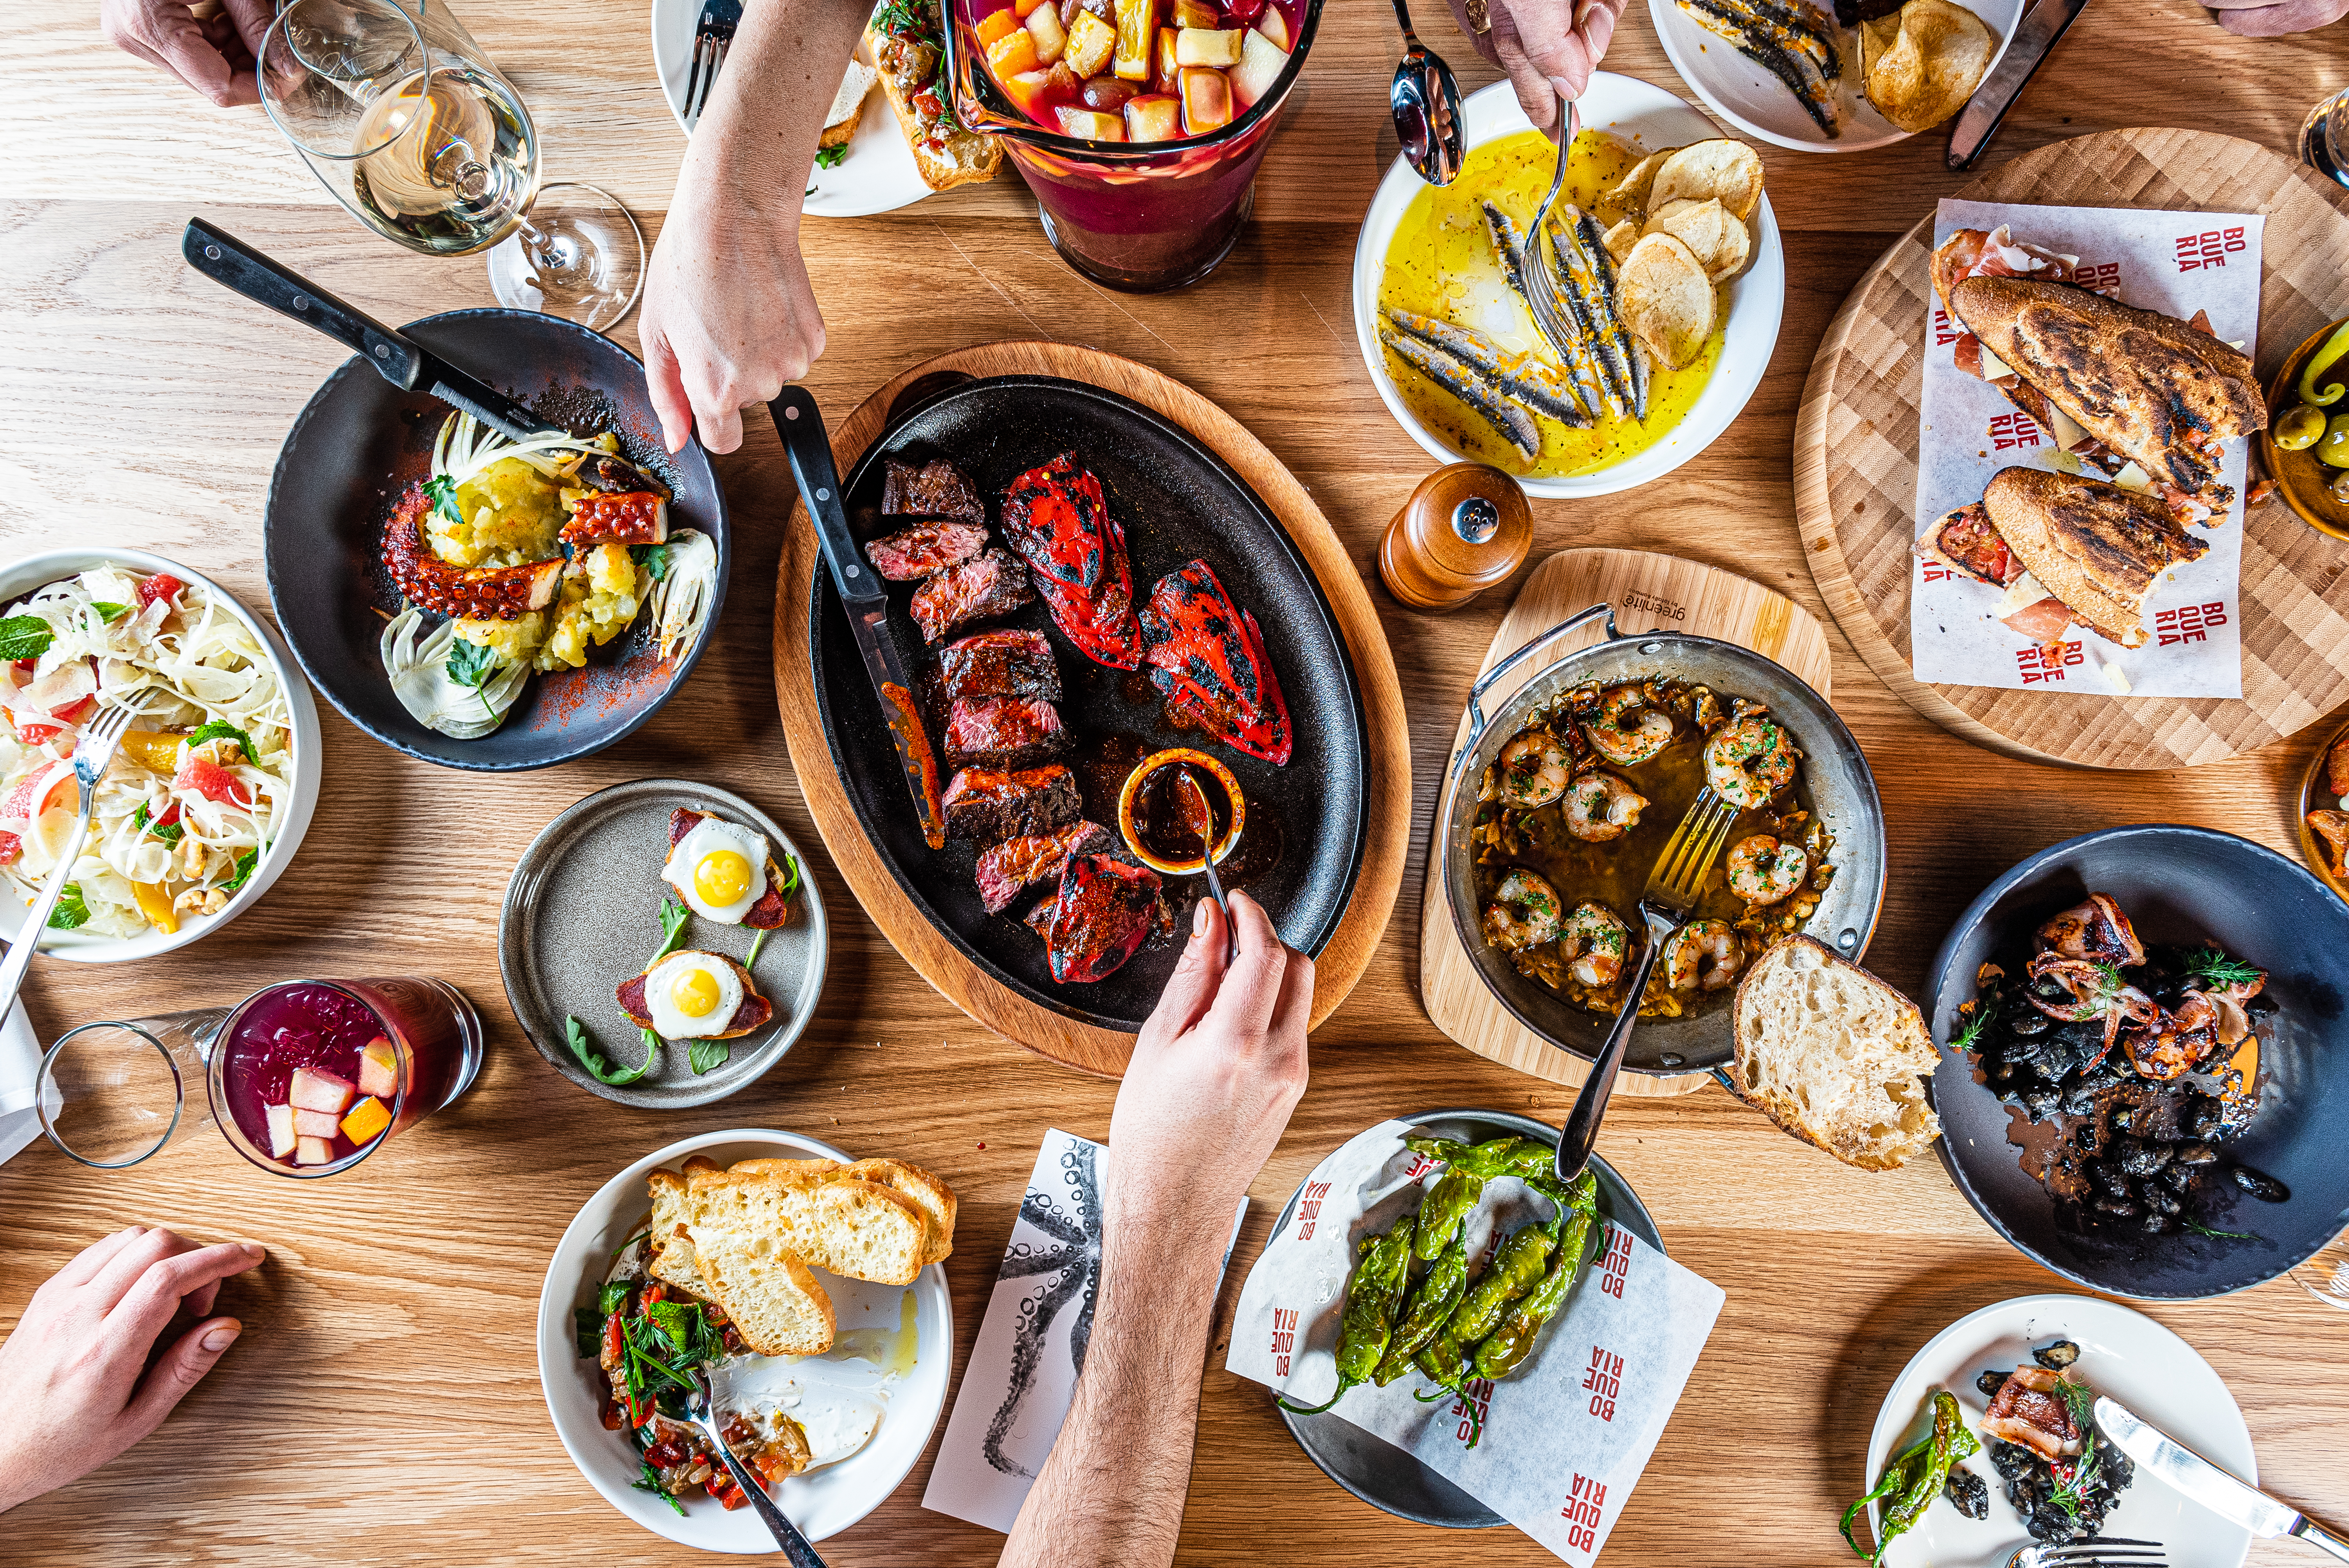 A wooden table filled with plates of small Spanish tapas.